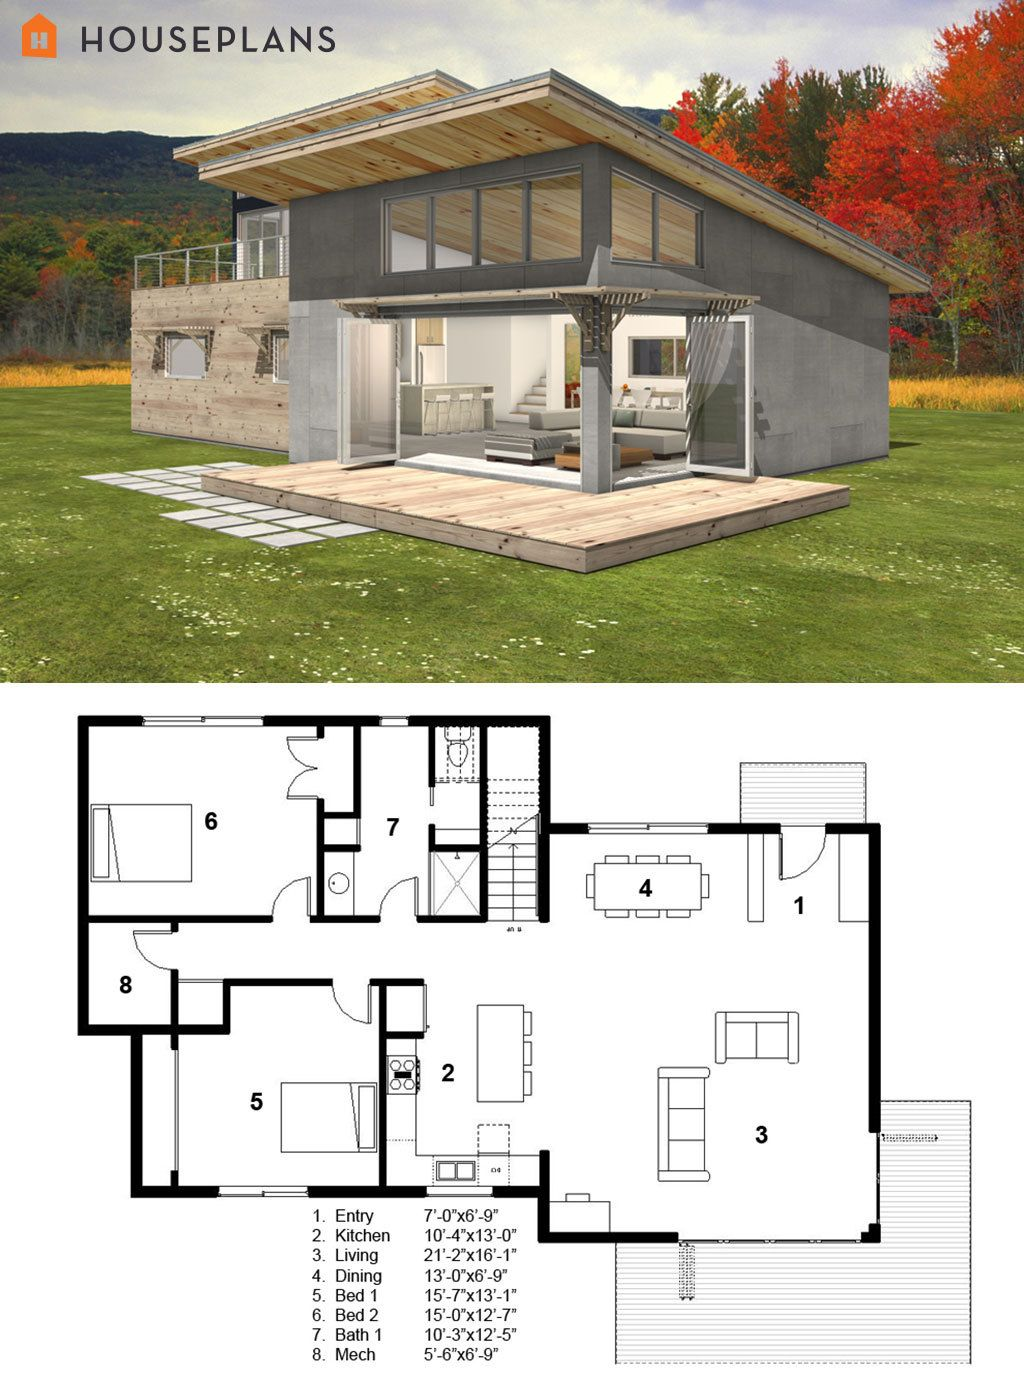 Small modern cabin house plan by freegreen energy for Modern house plans 2015